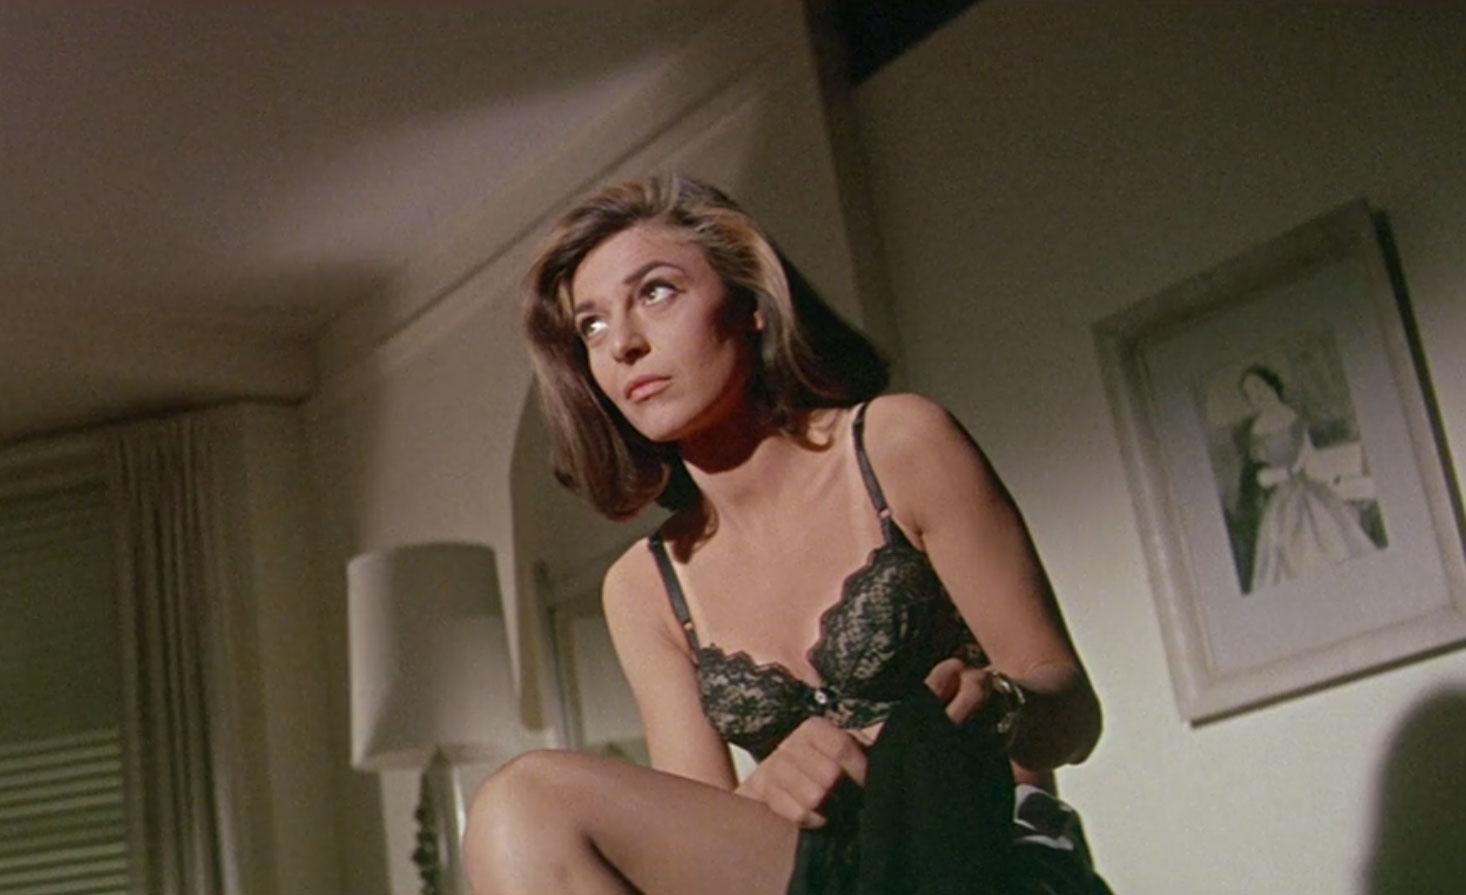 Mrs. Robinson's Lace Bra                                Anne Bancroft seduced audiences — and Dustin Hoffman's Benjamin Braddock — with her black brassiere in the classic 1967 film The Graduate.